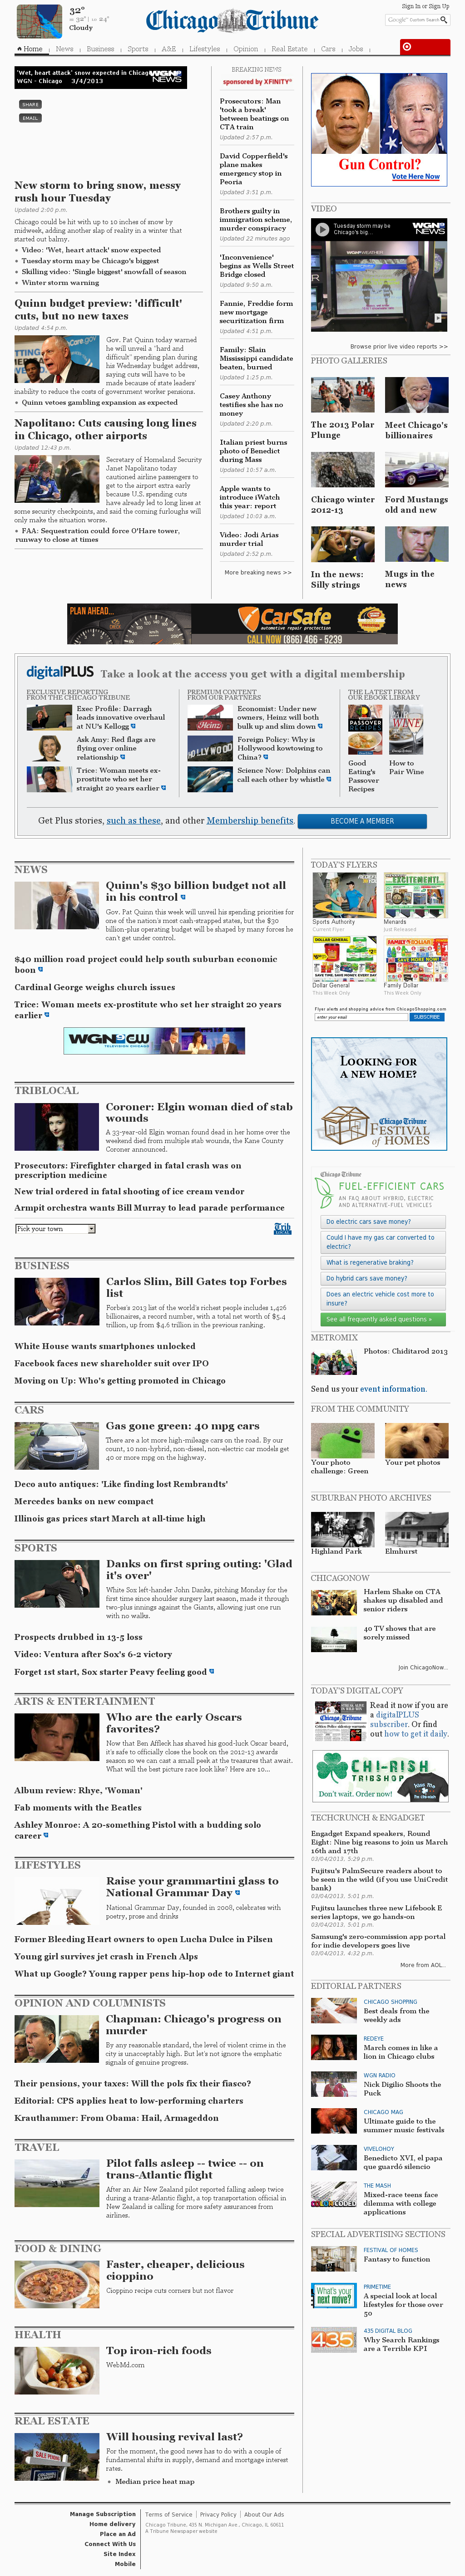 Chicago Tribune at Tuesday March 5, 2013, 12:03 a.m. UTC